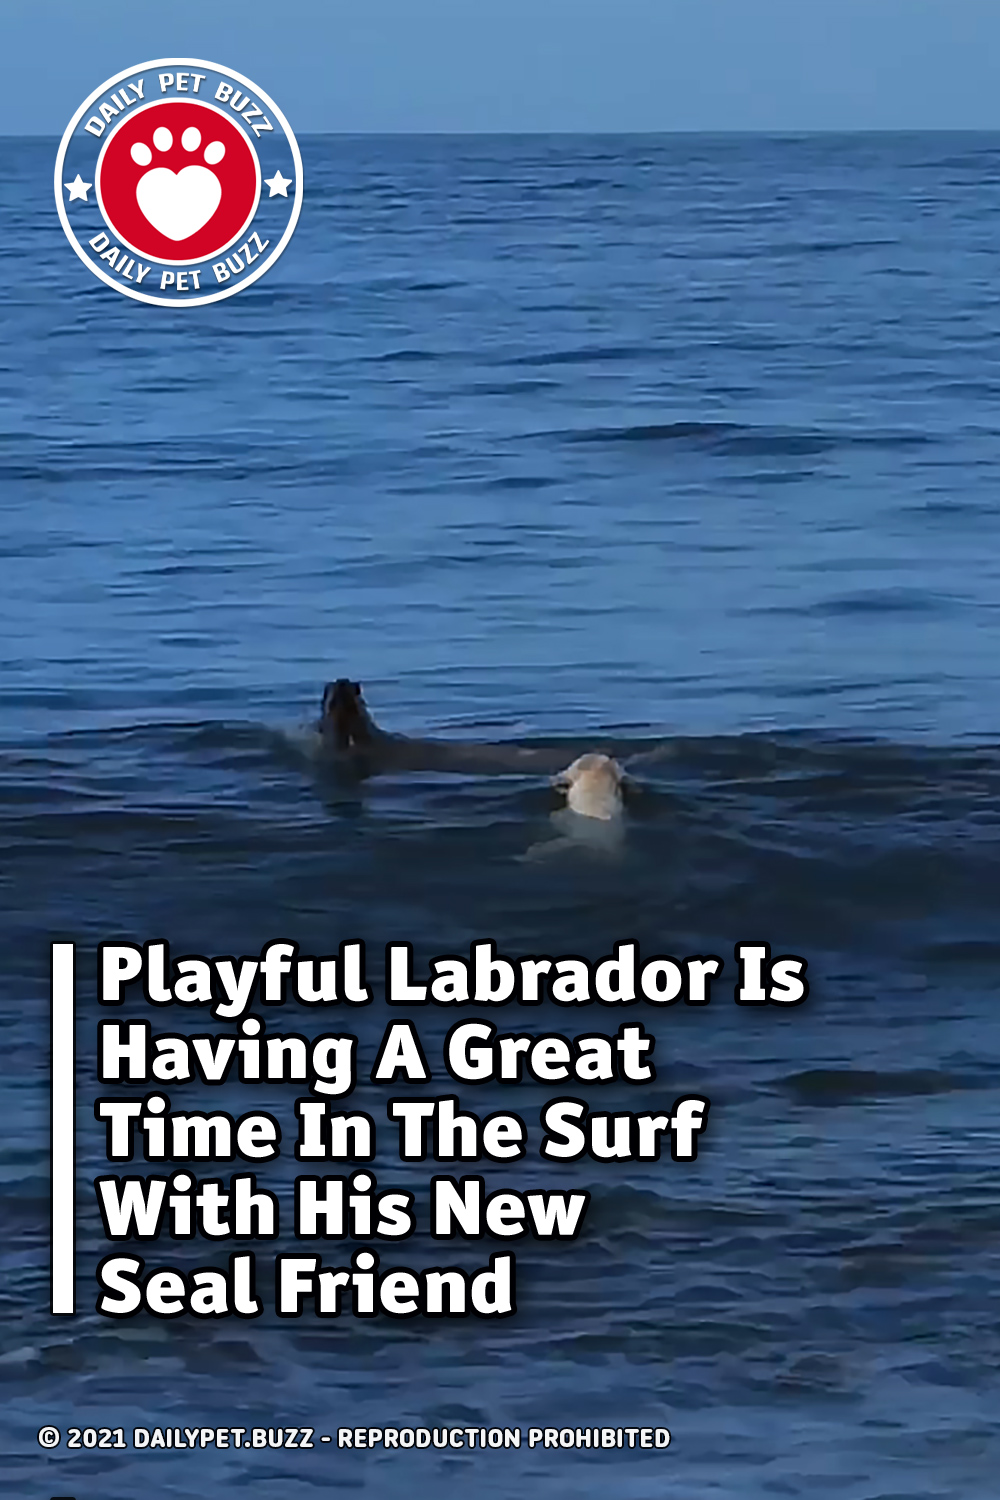 Playful Labrador Is Having A Great Time In The Surf With His New Seal Friend